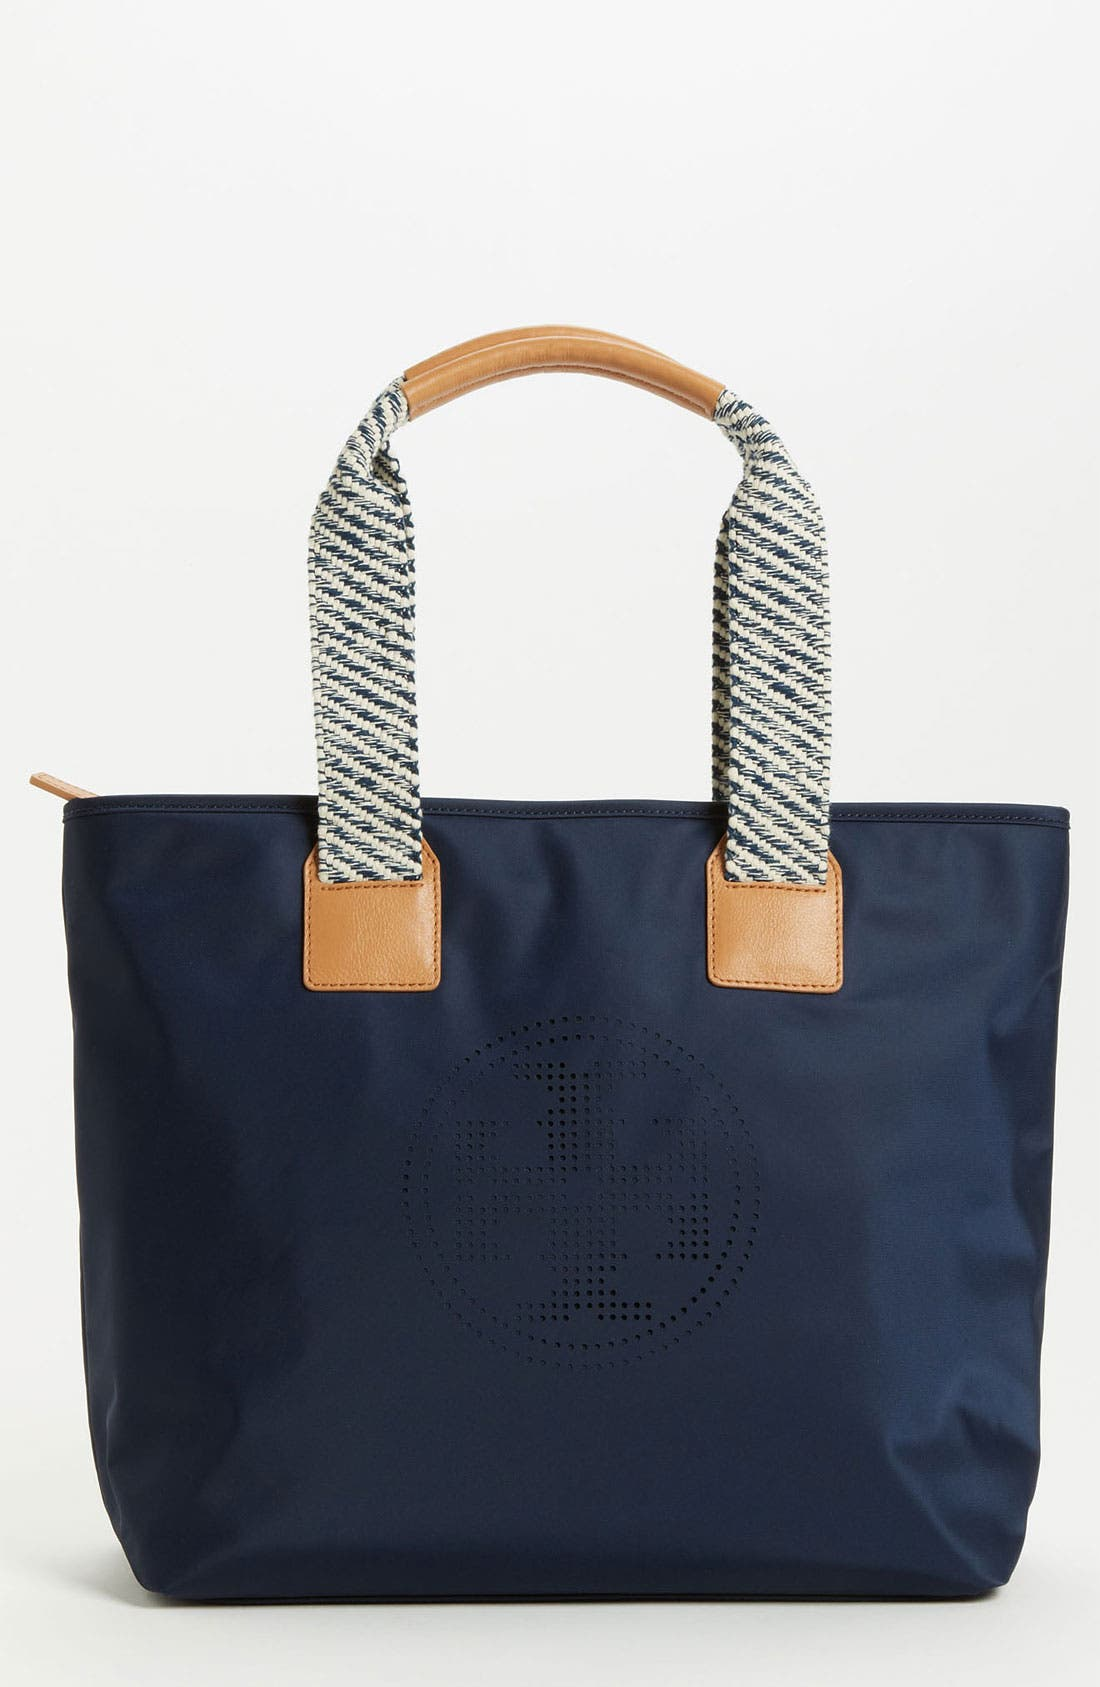 Alternate Image 1 Selected - Tory Burch 'Small' Perforated Logo Tote